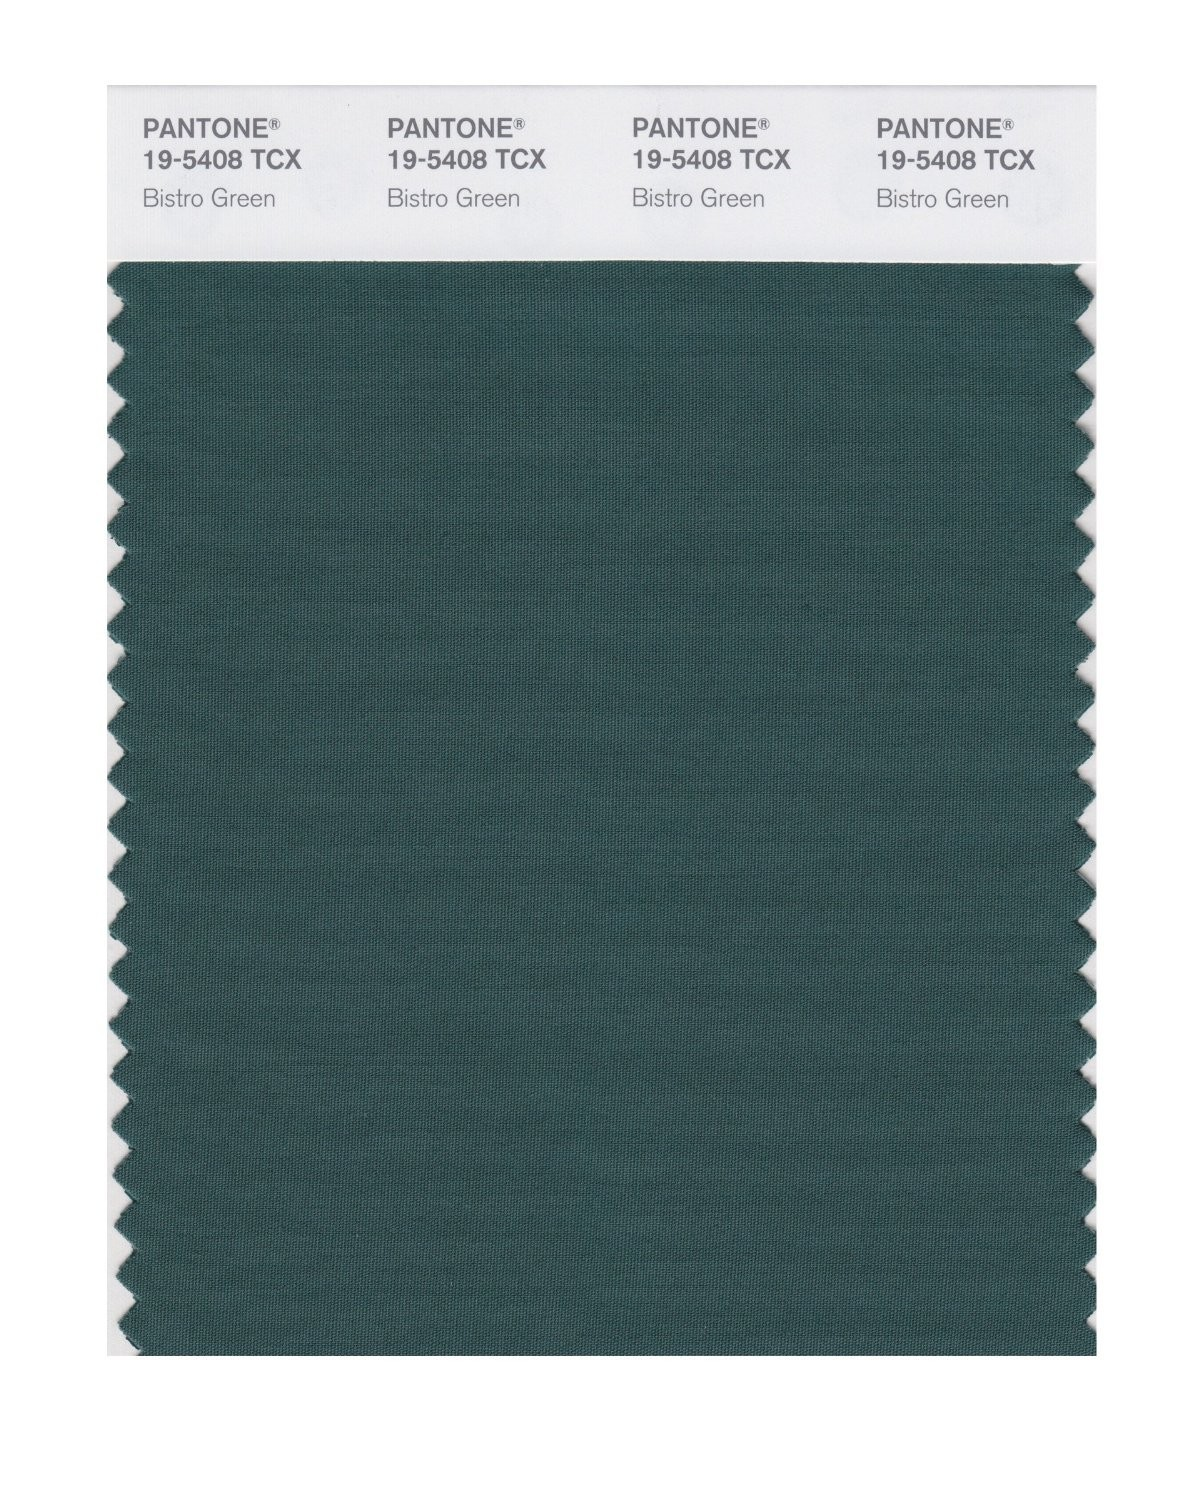 Pantone 19-5408 TCX Swatch Card Bistro Green